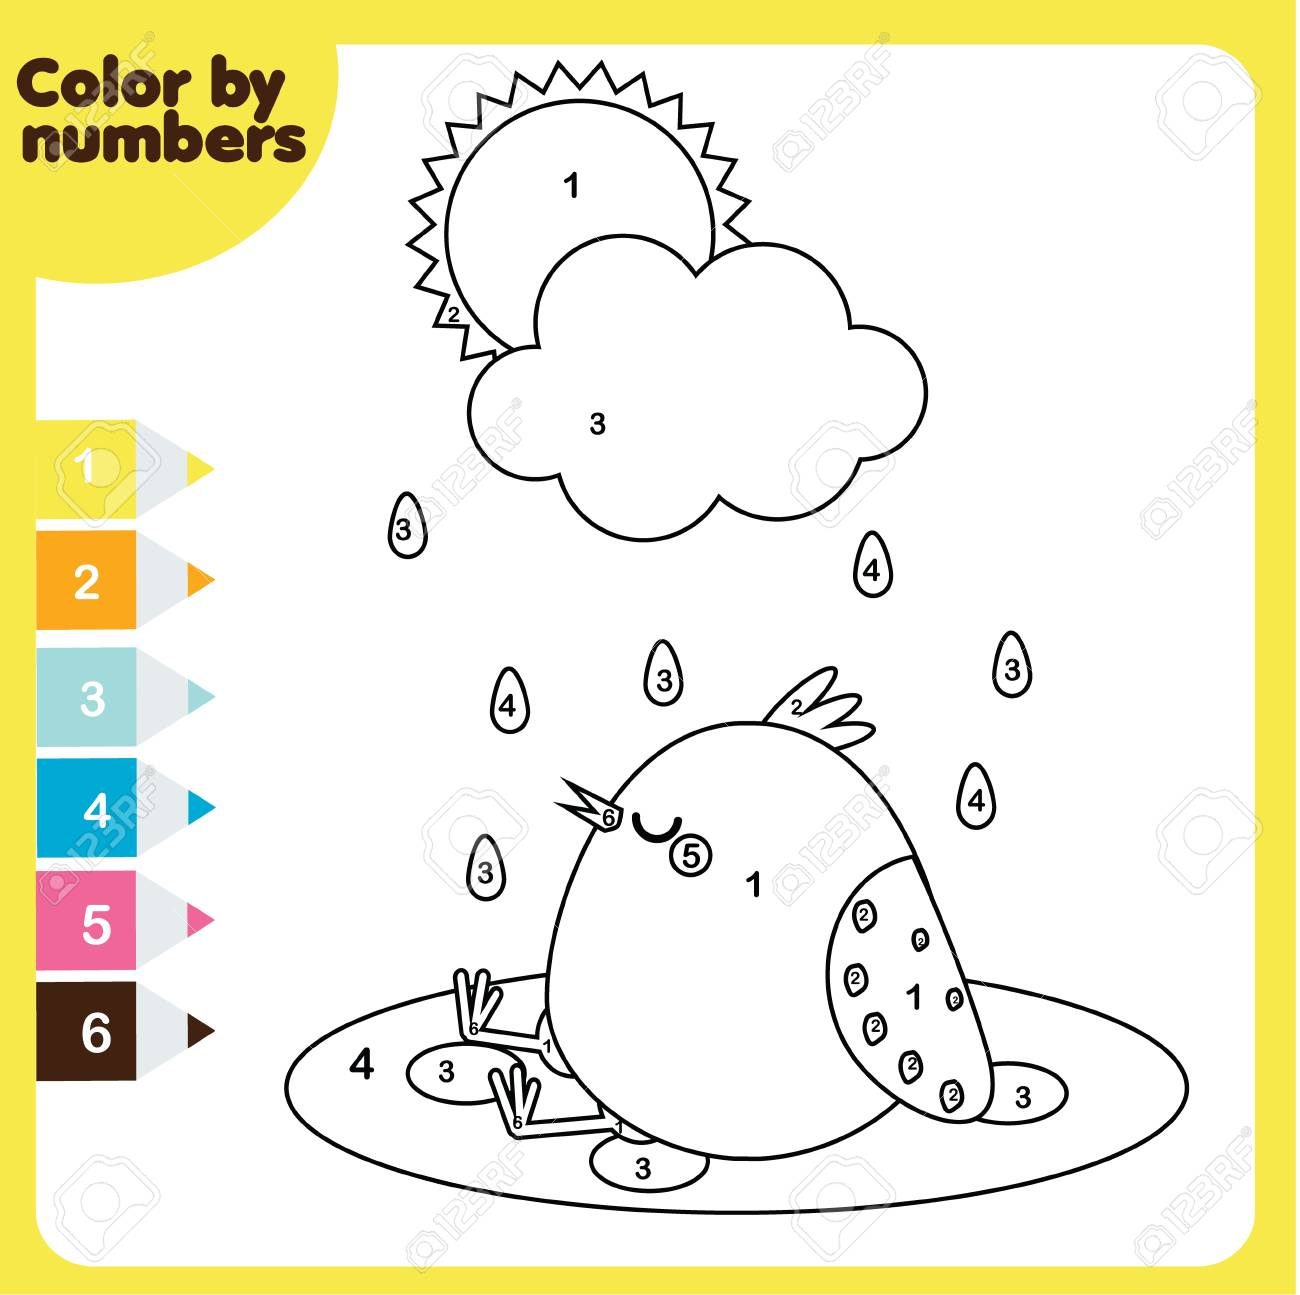 image regarding Printable Activities for Toddlers referred to as Coloring web page with chook. Colour through figures, printable worksheet